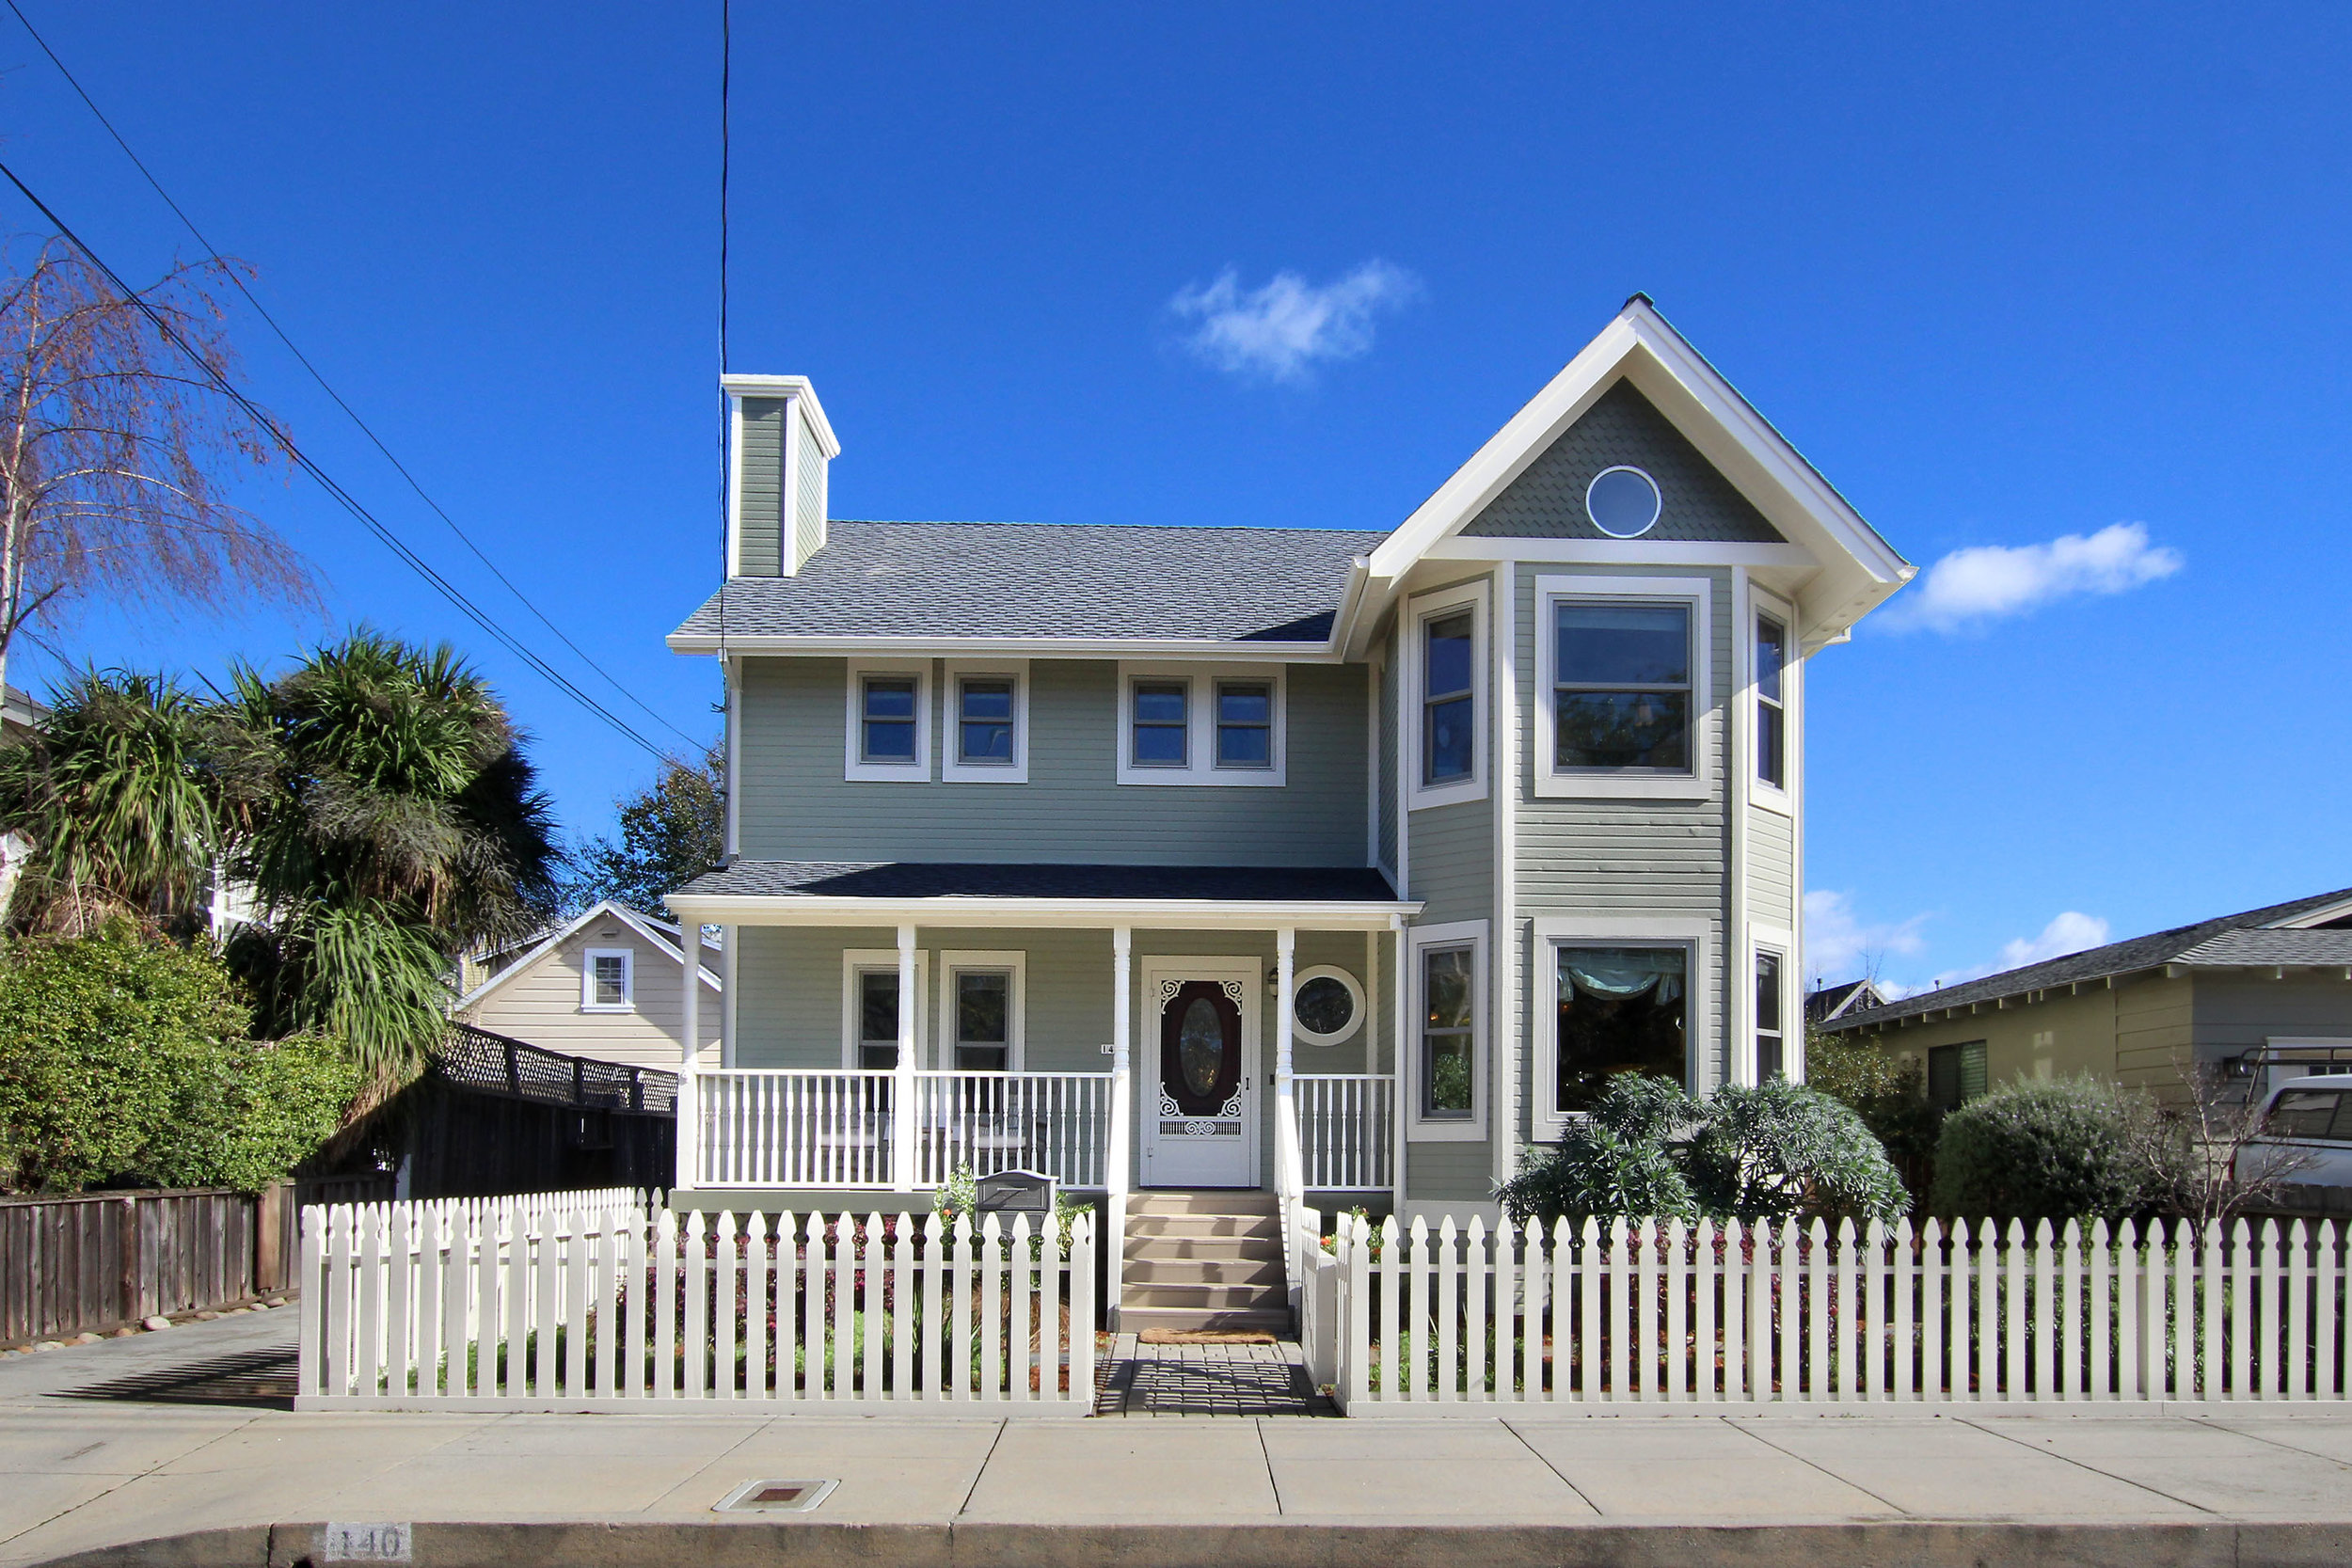 140 Myrtle St - Santa Cruz, california